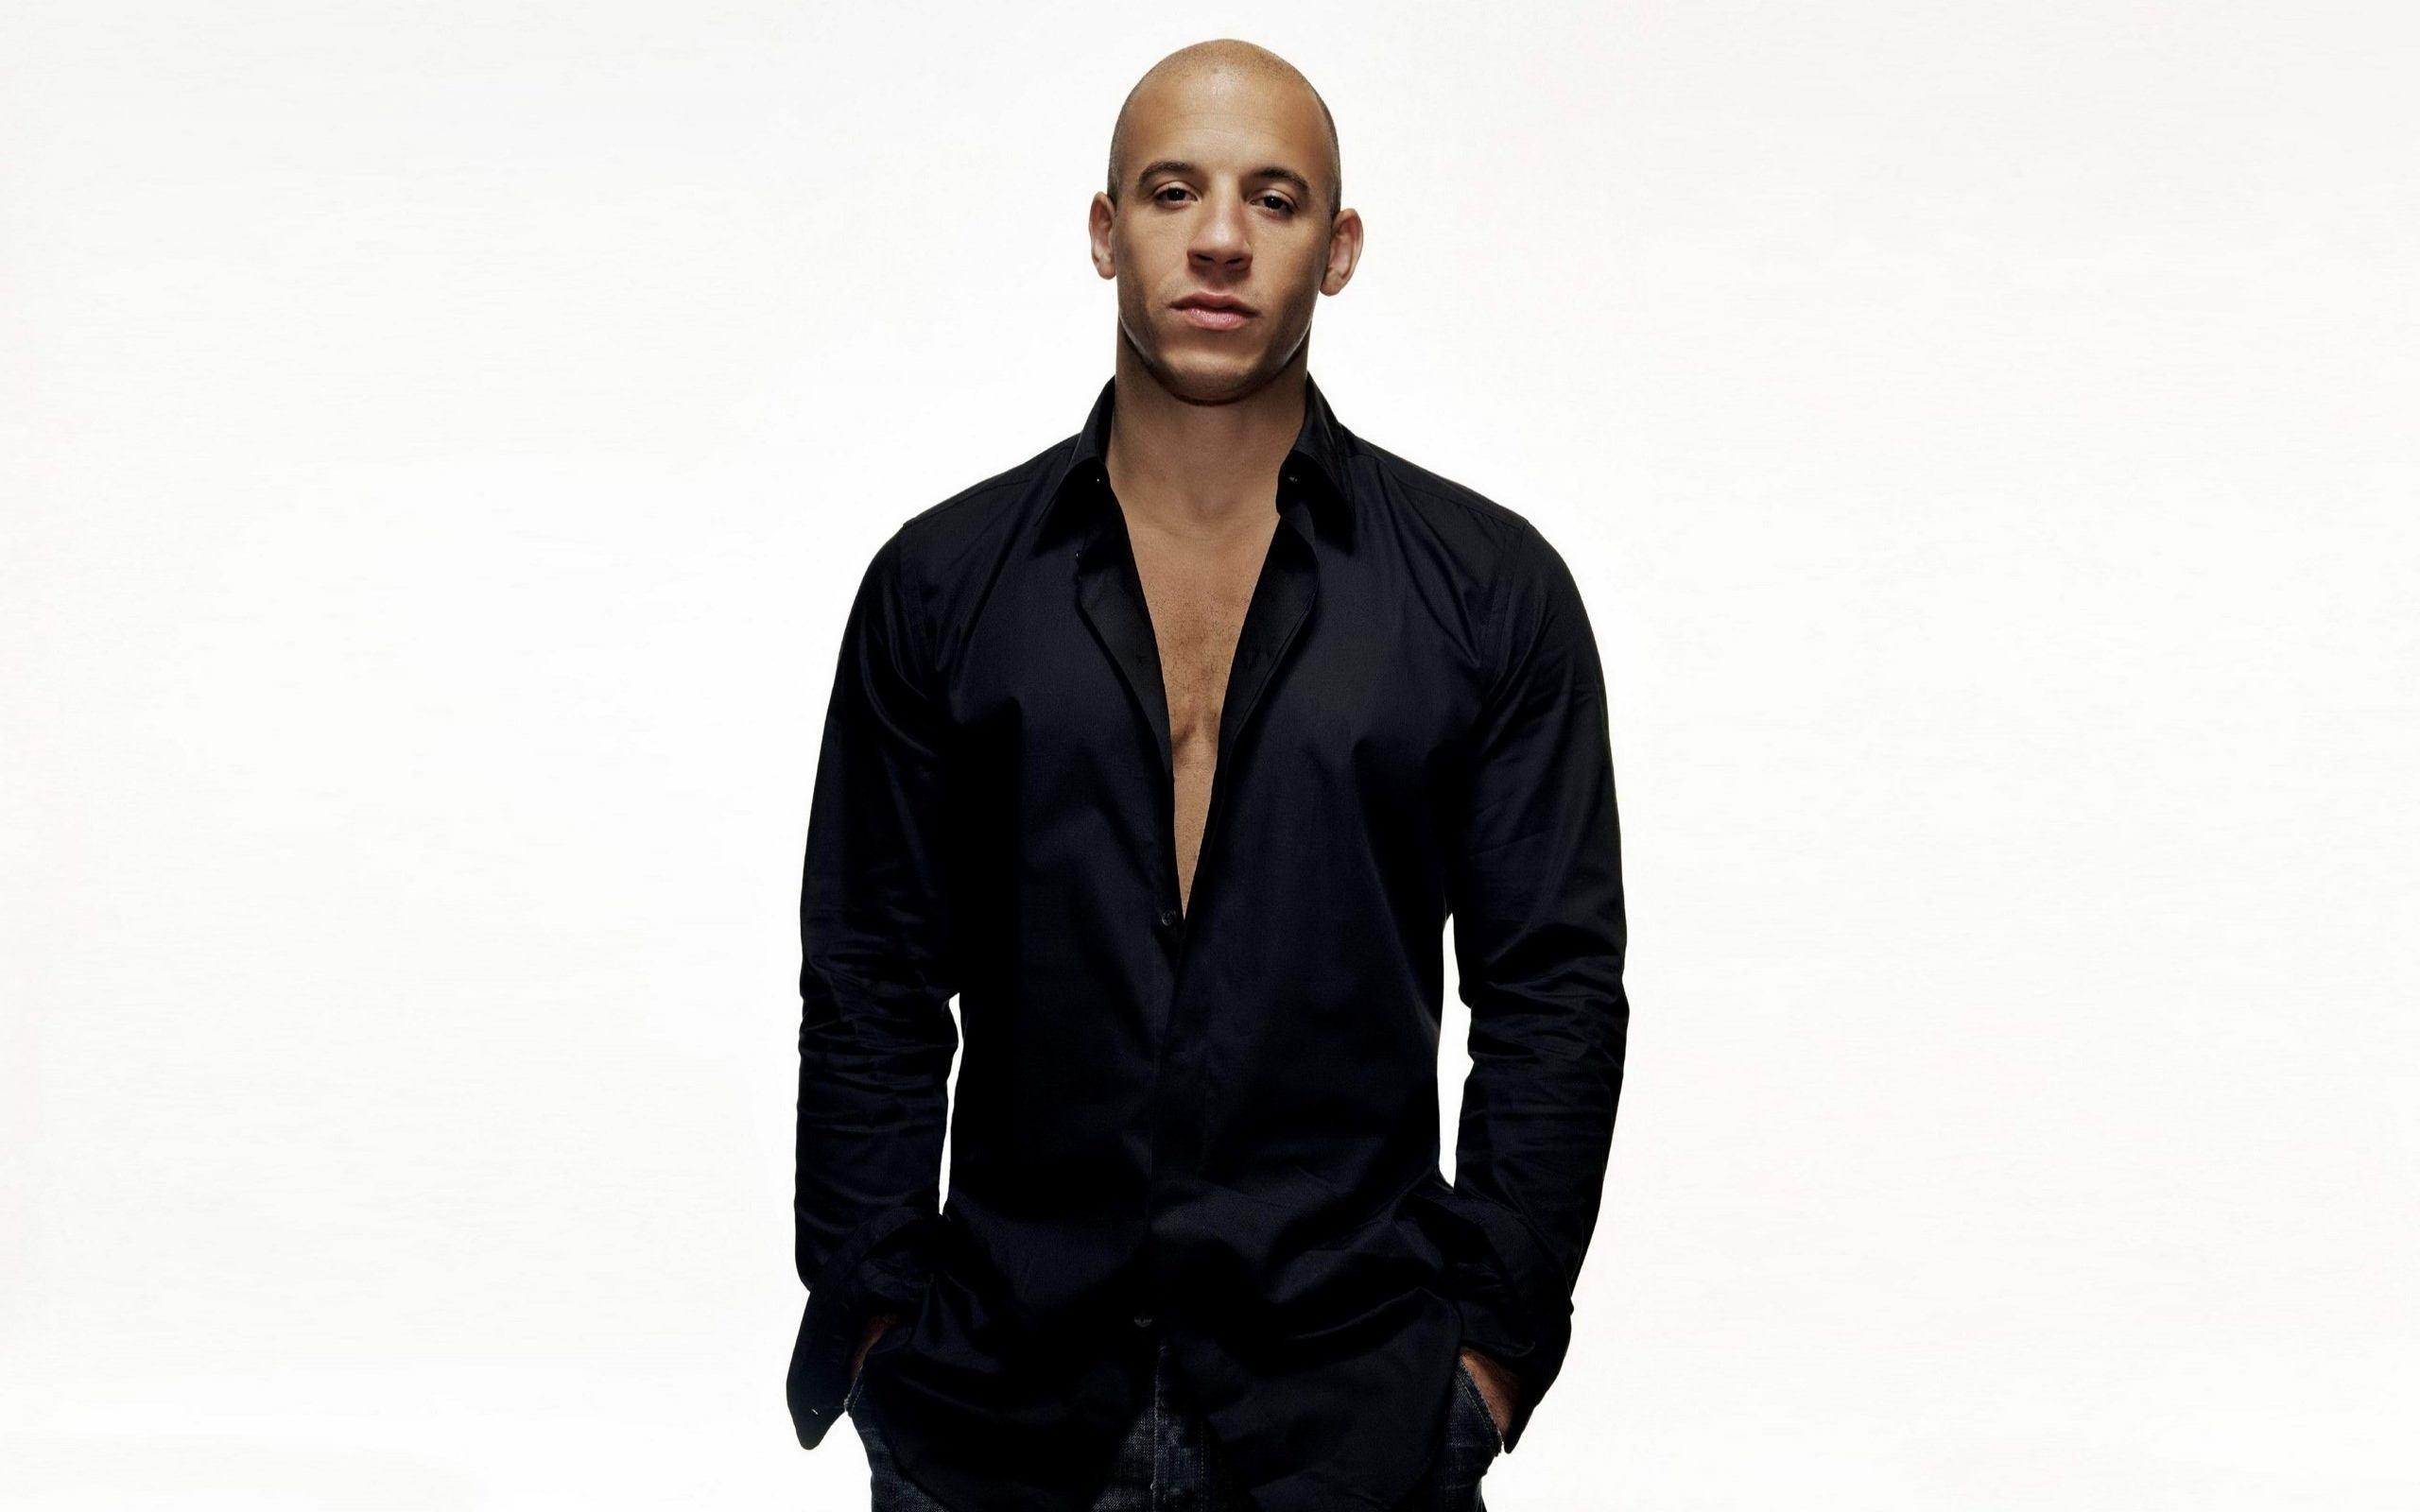 Vin Diesel Hd Wallpapers 7wallpapers Net